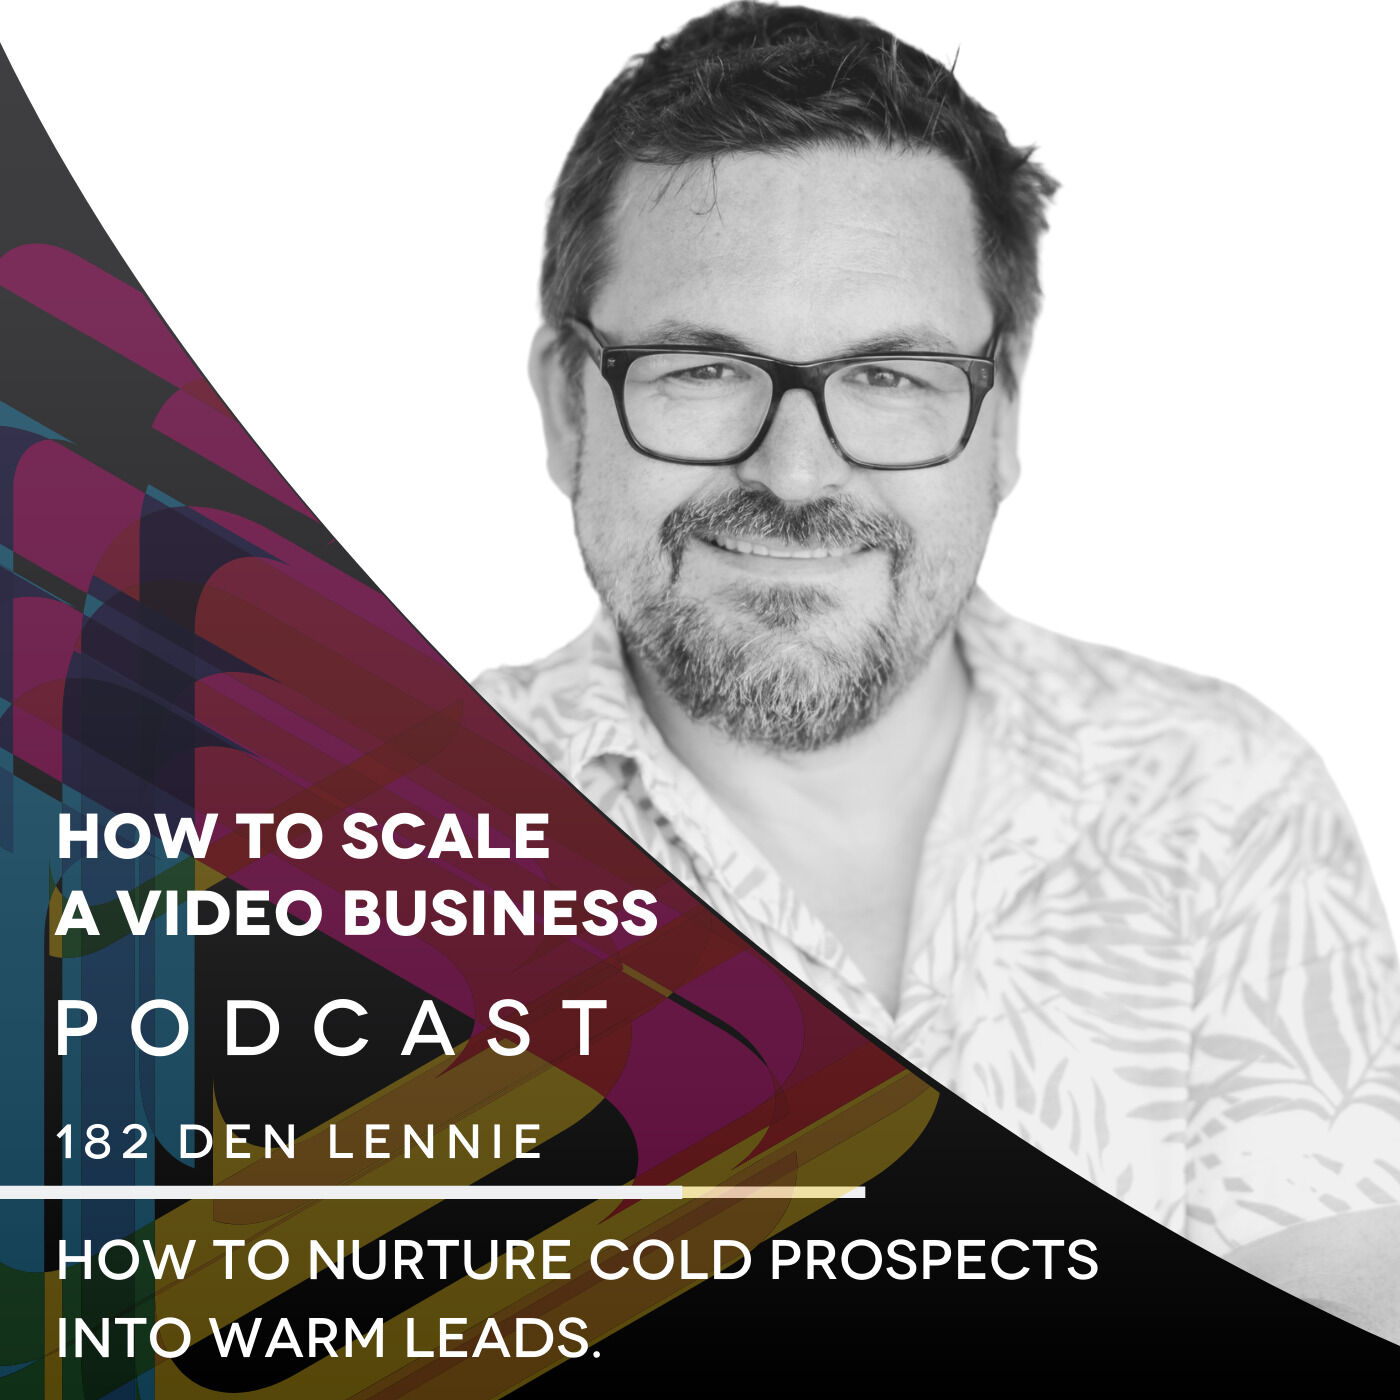 How to nurture cold prospects into warm leads. EP #182 - Den Lennie